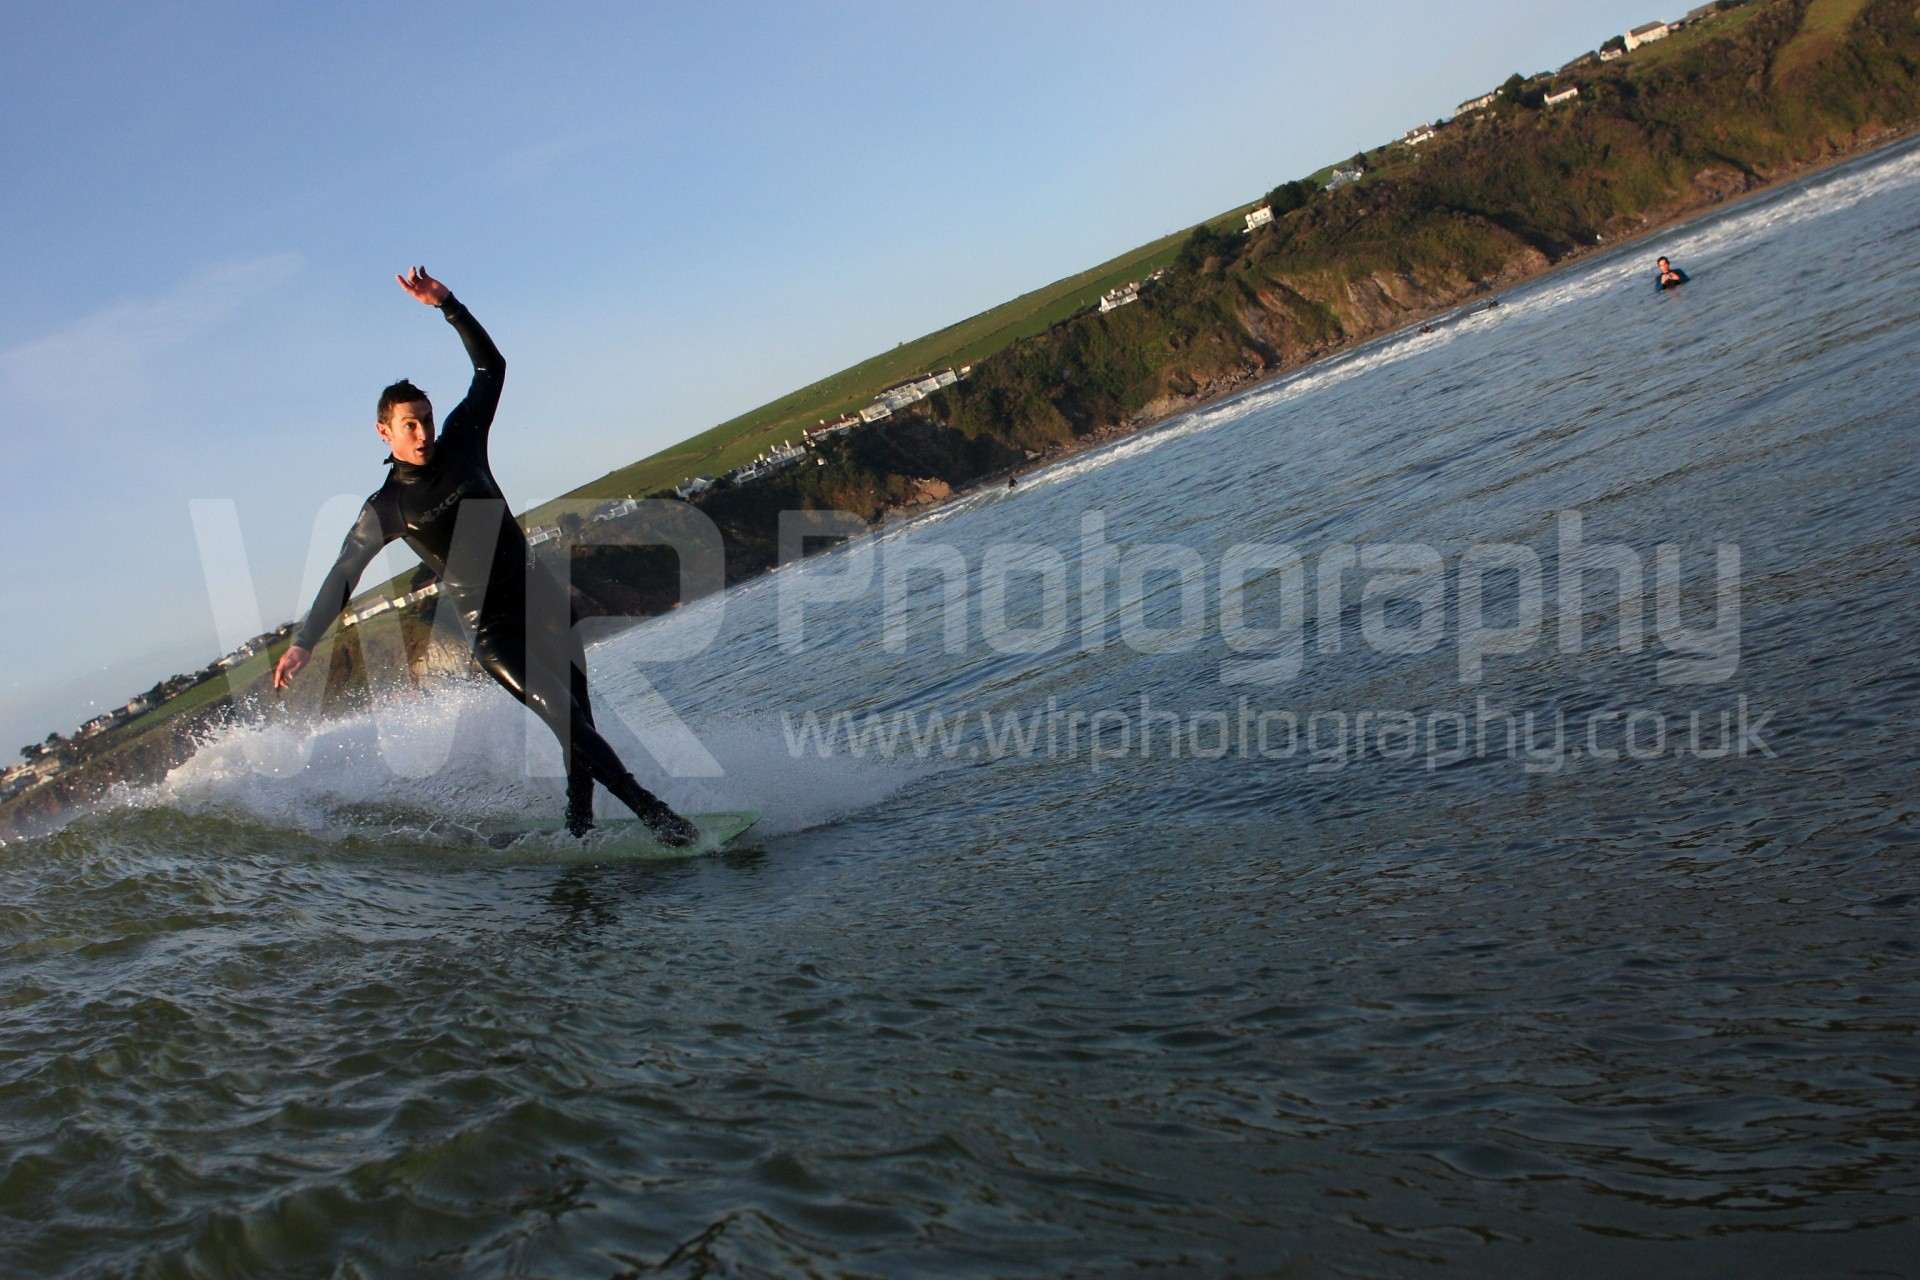 Will Reddaway's photo of Bantham